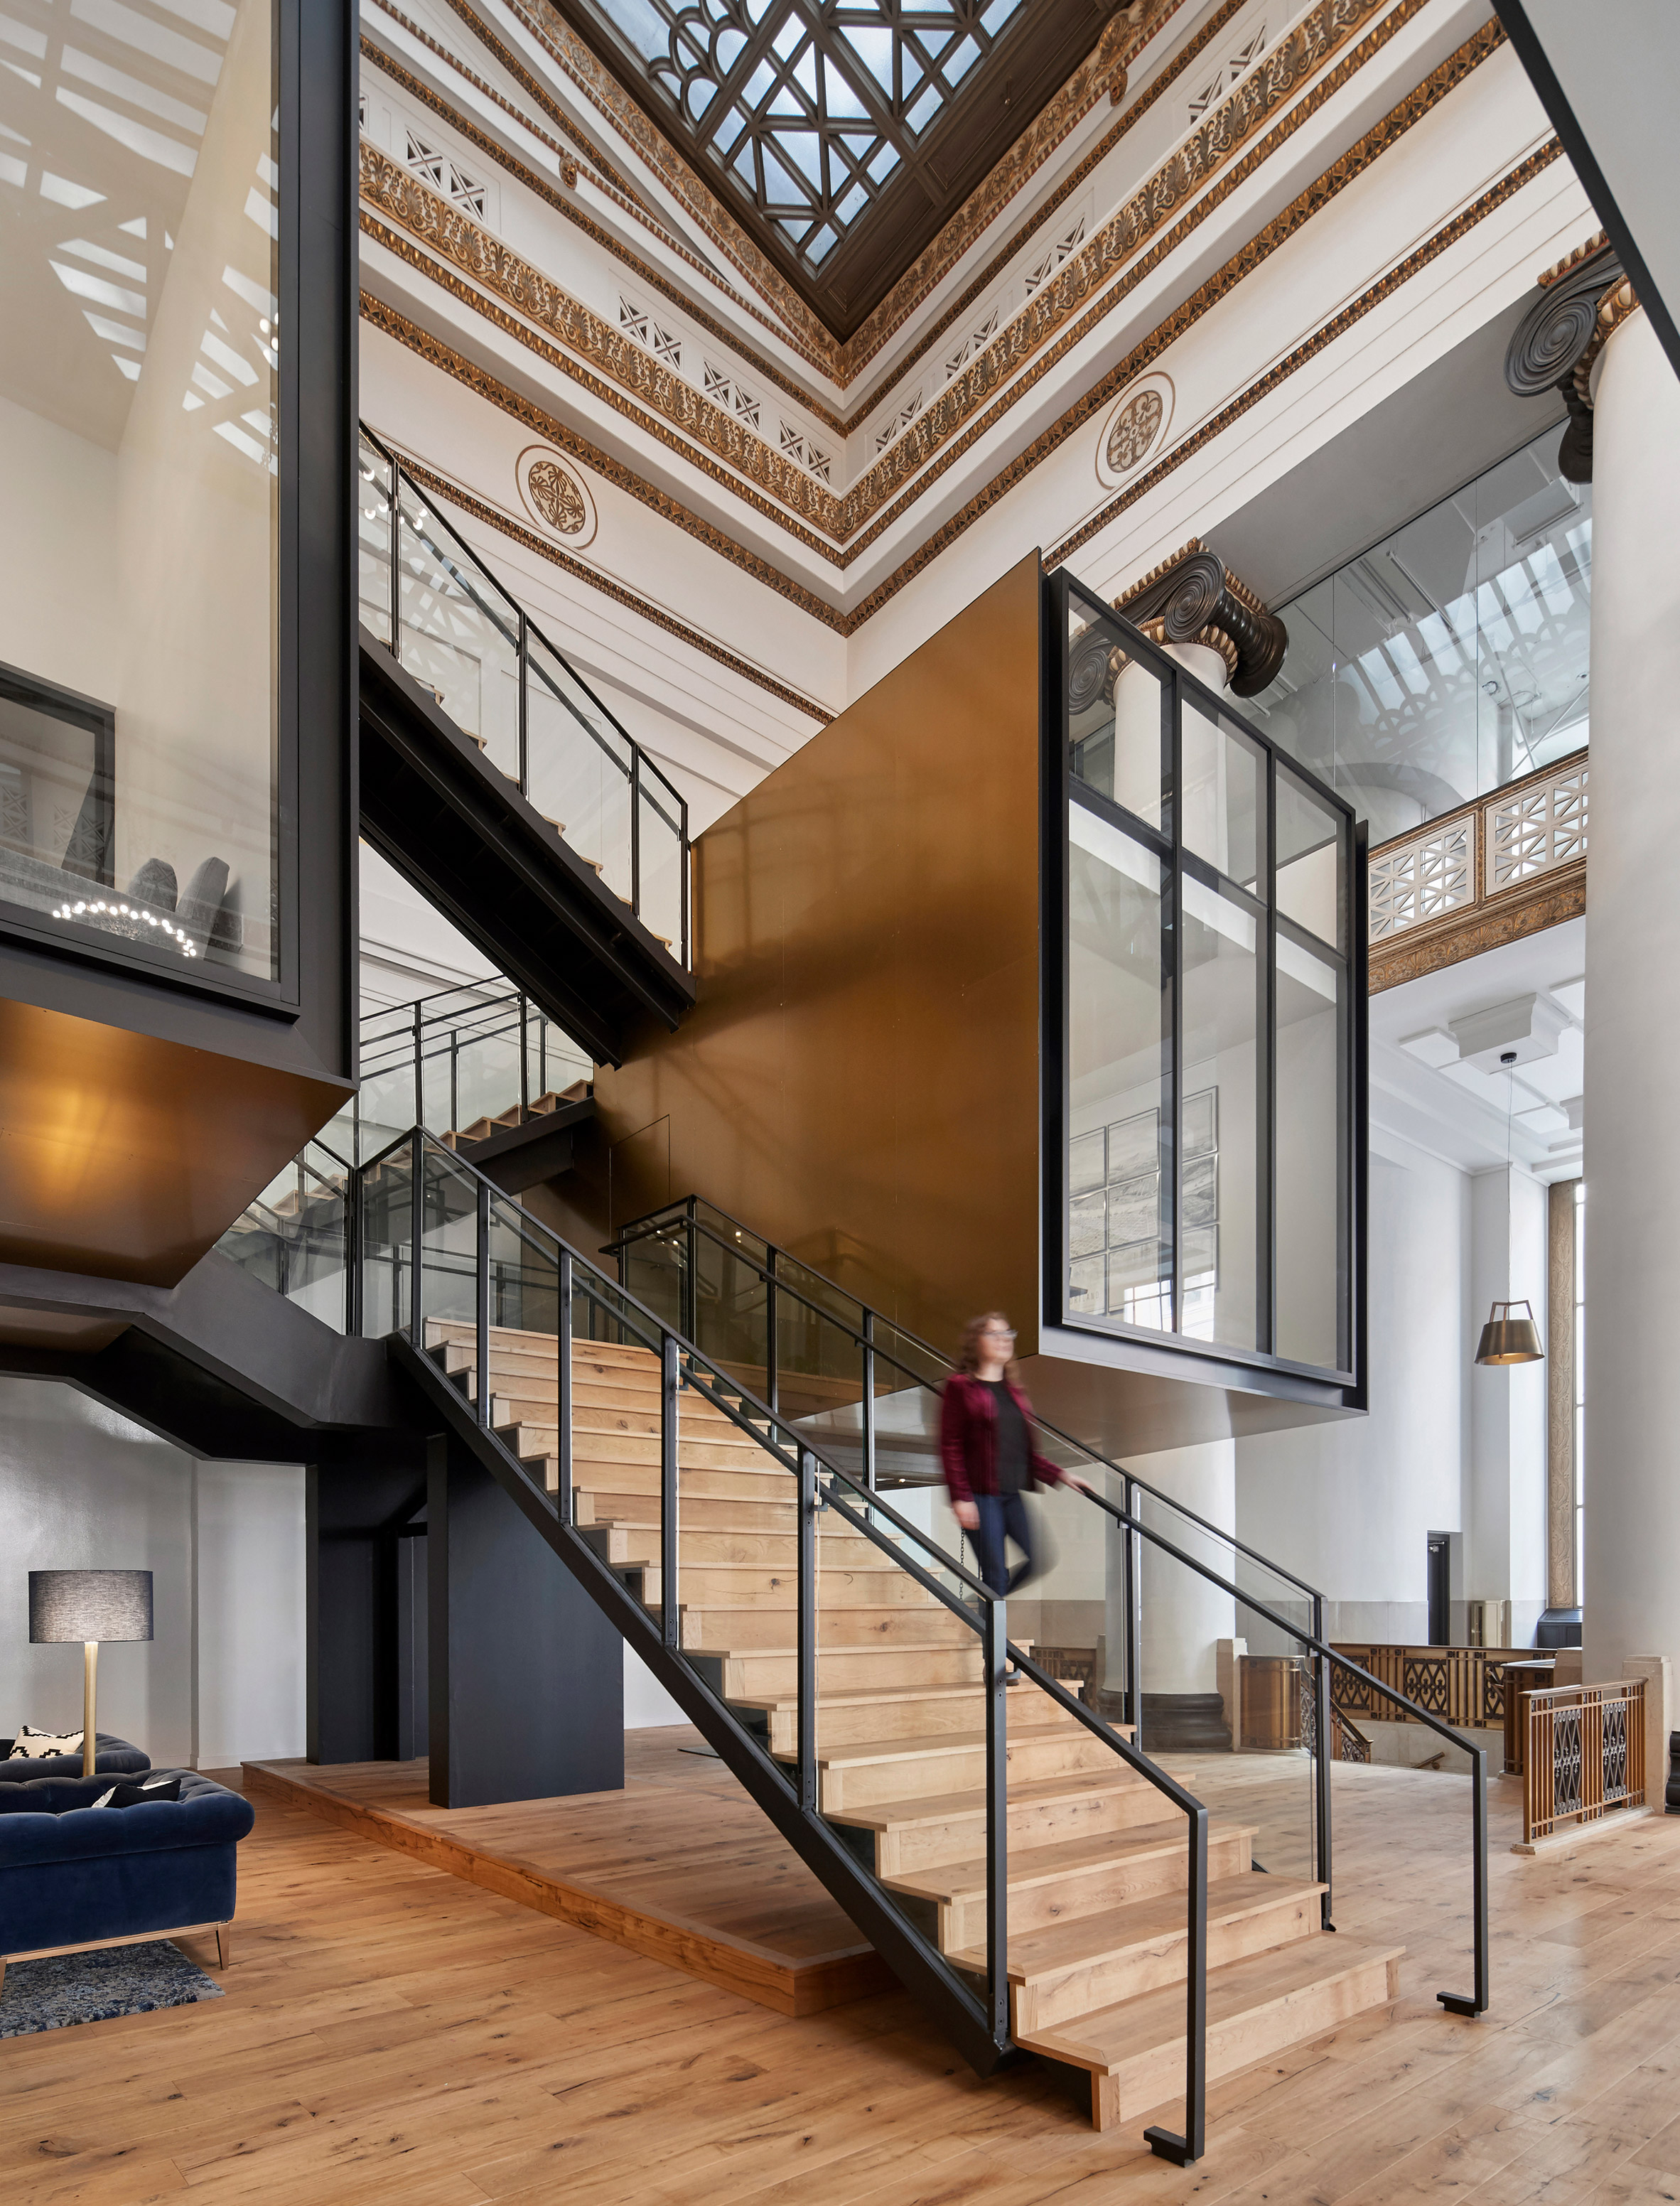 ZGF Architects transforms historic Portland bank building into Expensify office